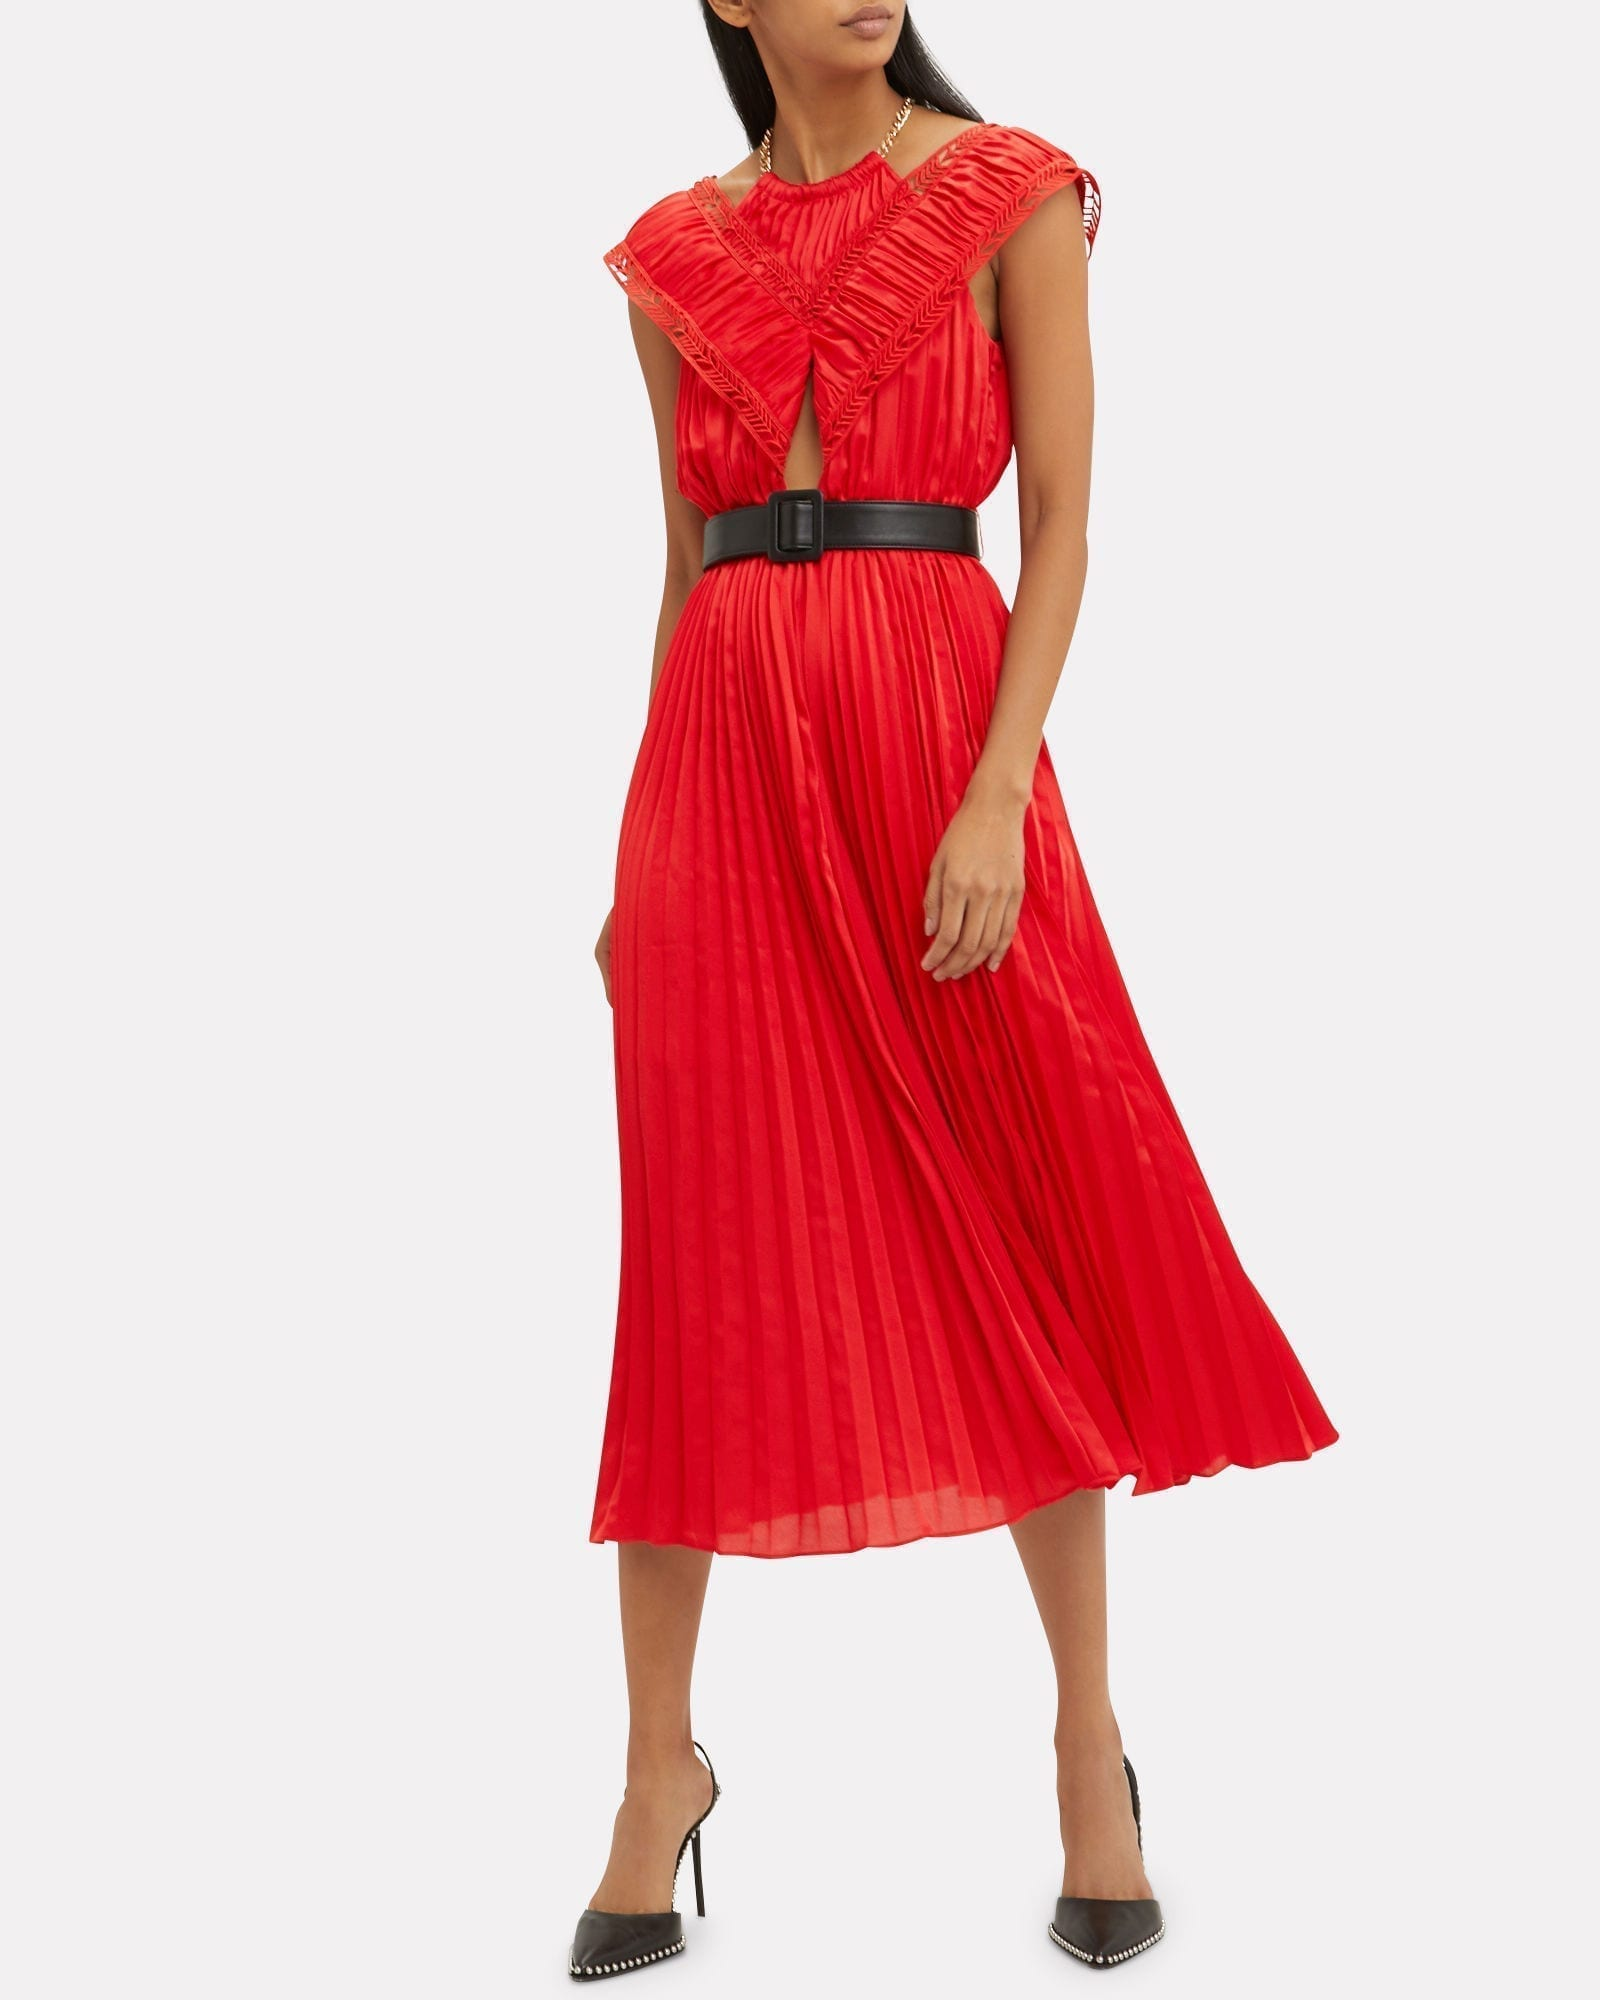 SELF-PORTRAIT Off Shoulder Pleated Red Dress